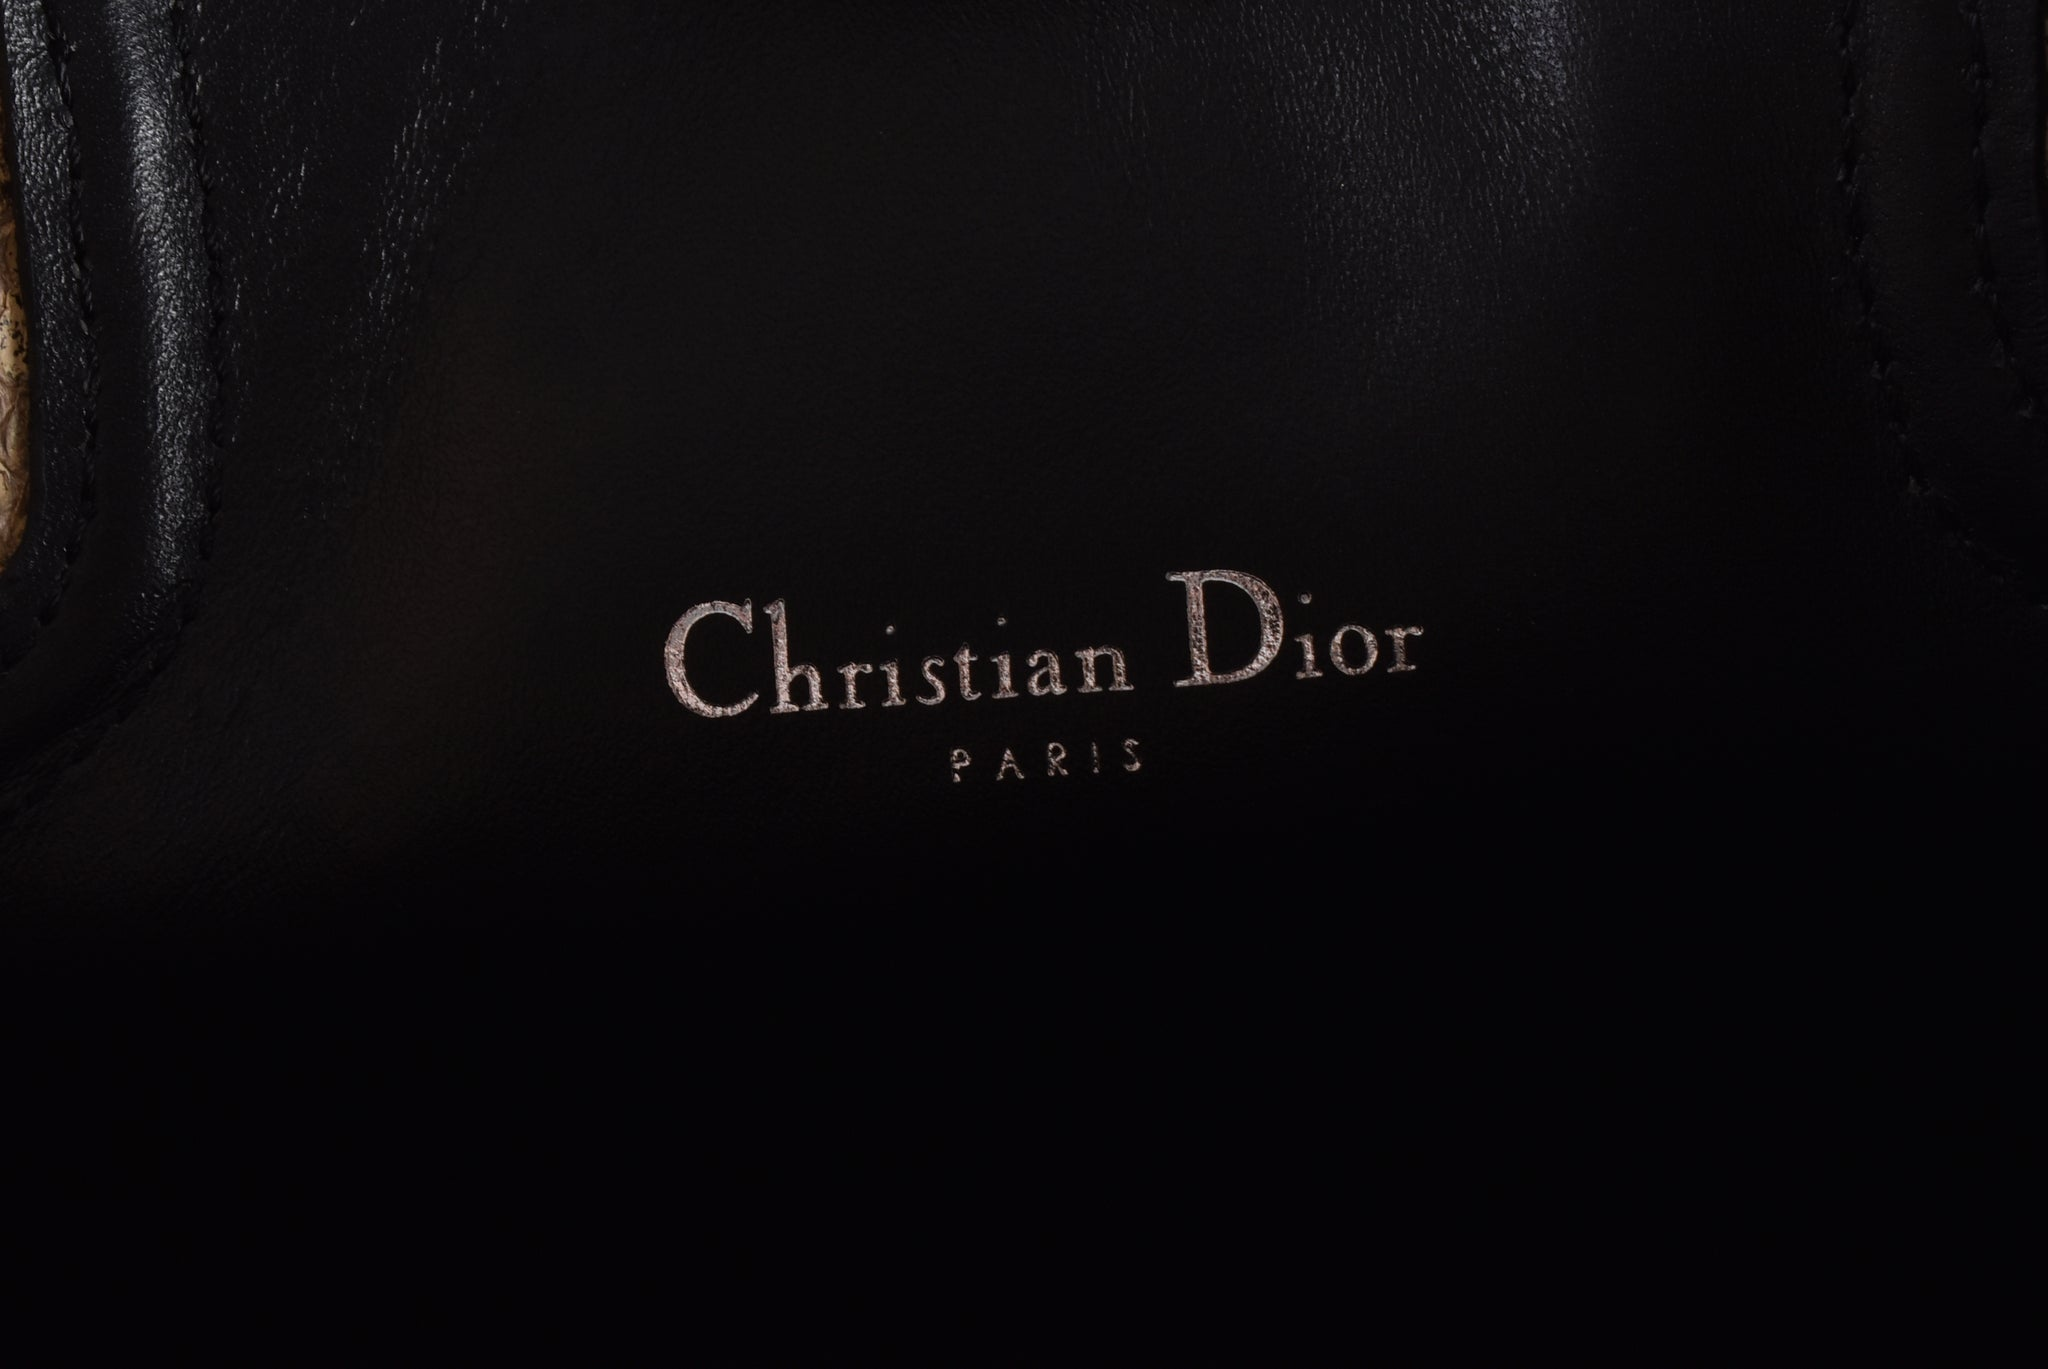 Christian Dior Black leather Tote Bag with Snake Skin Handles - Glampot